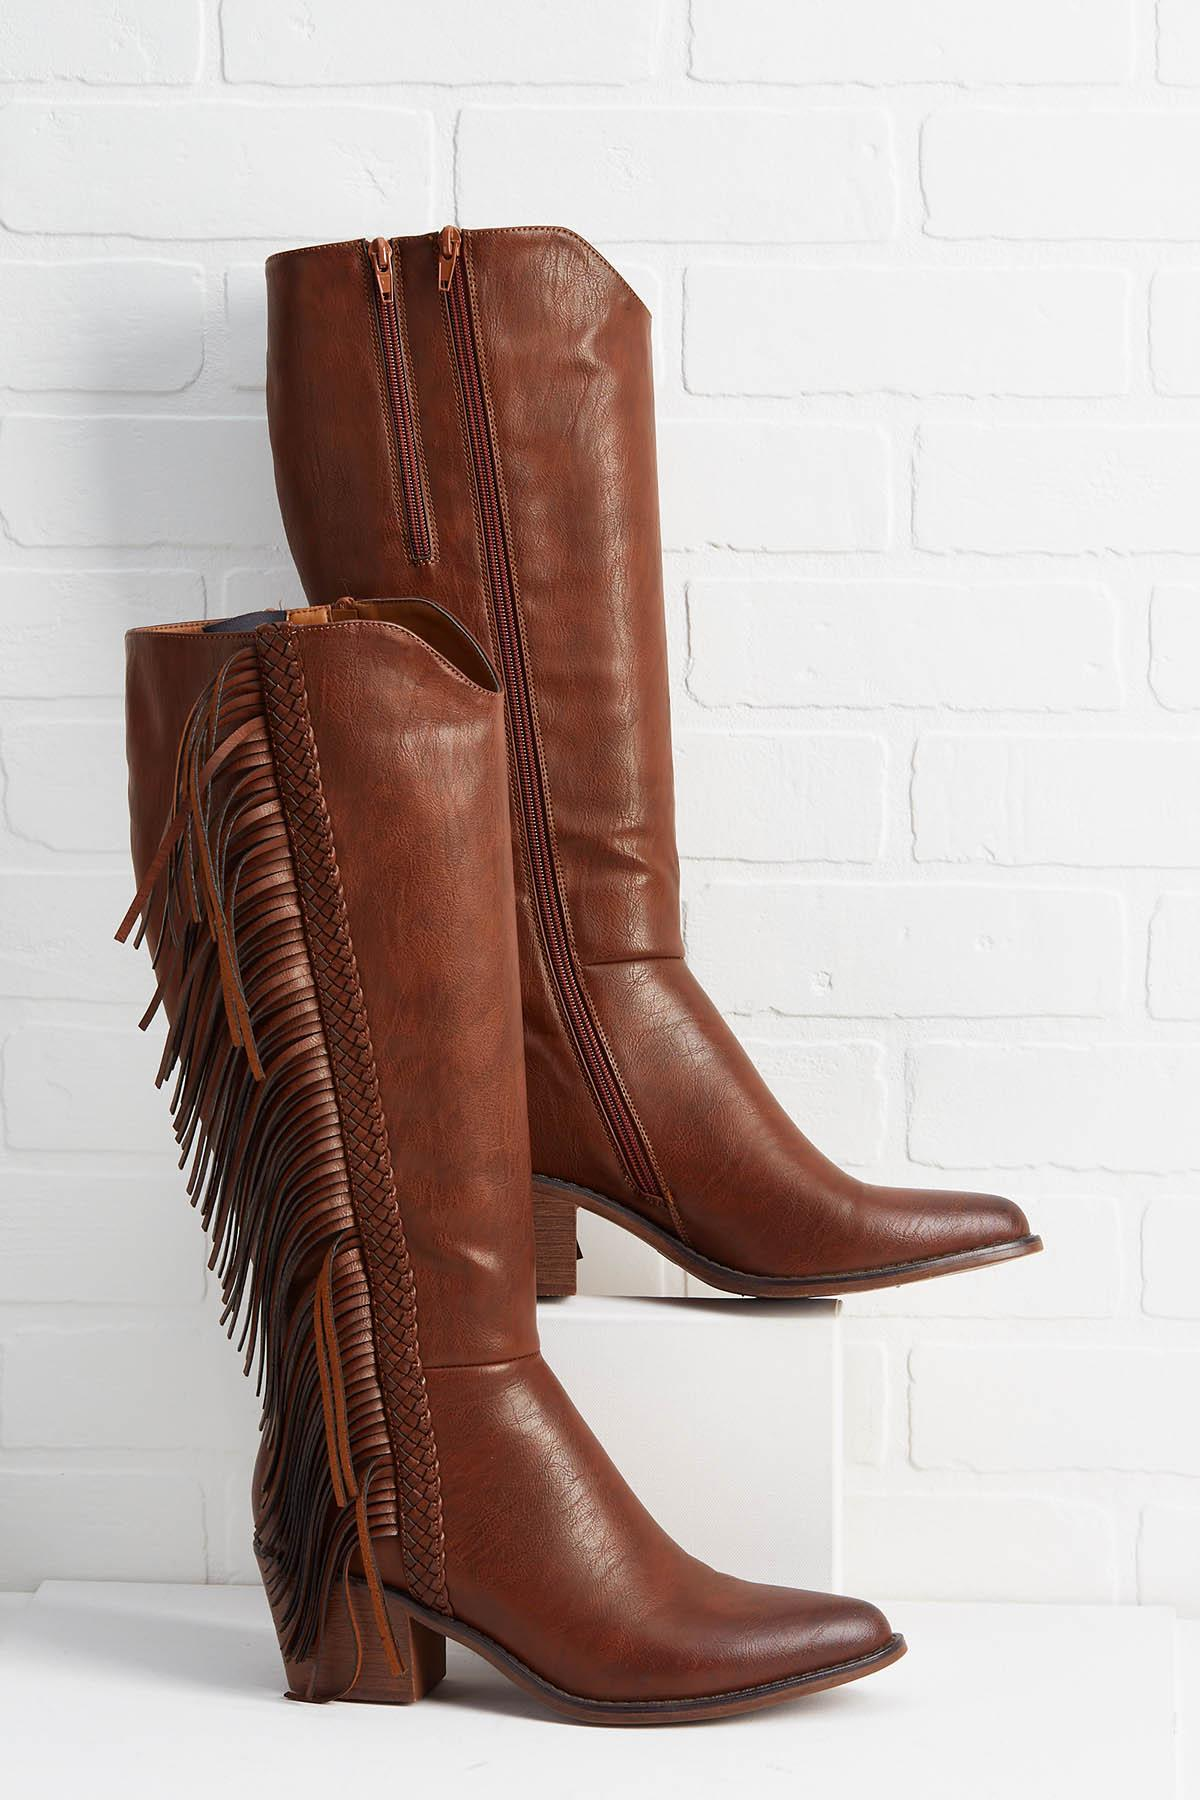 Gone Country Boots